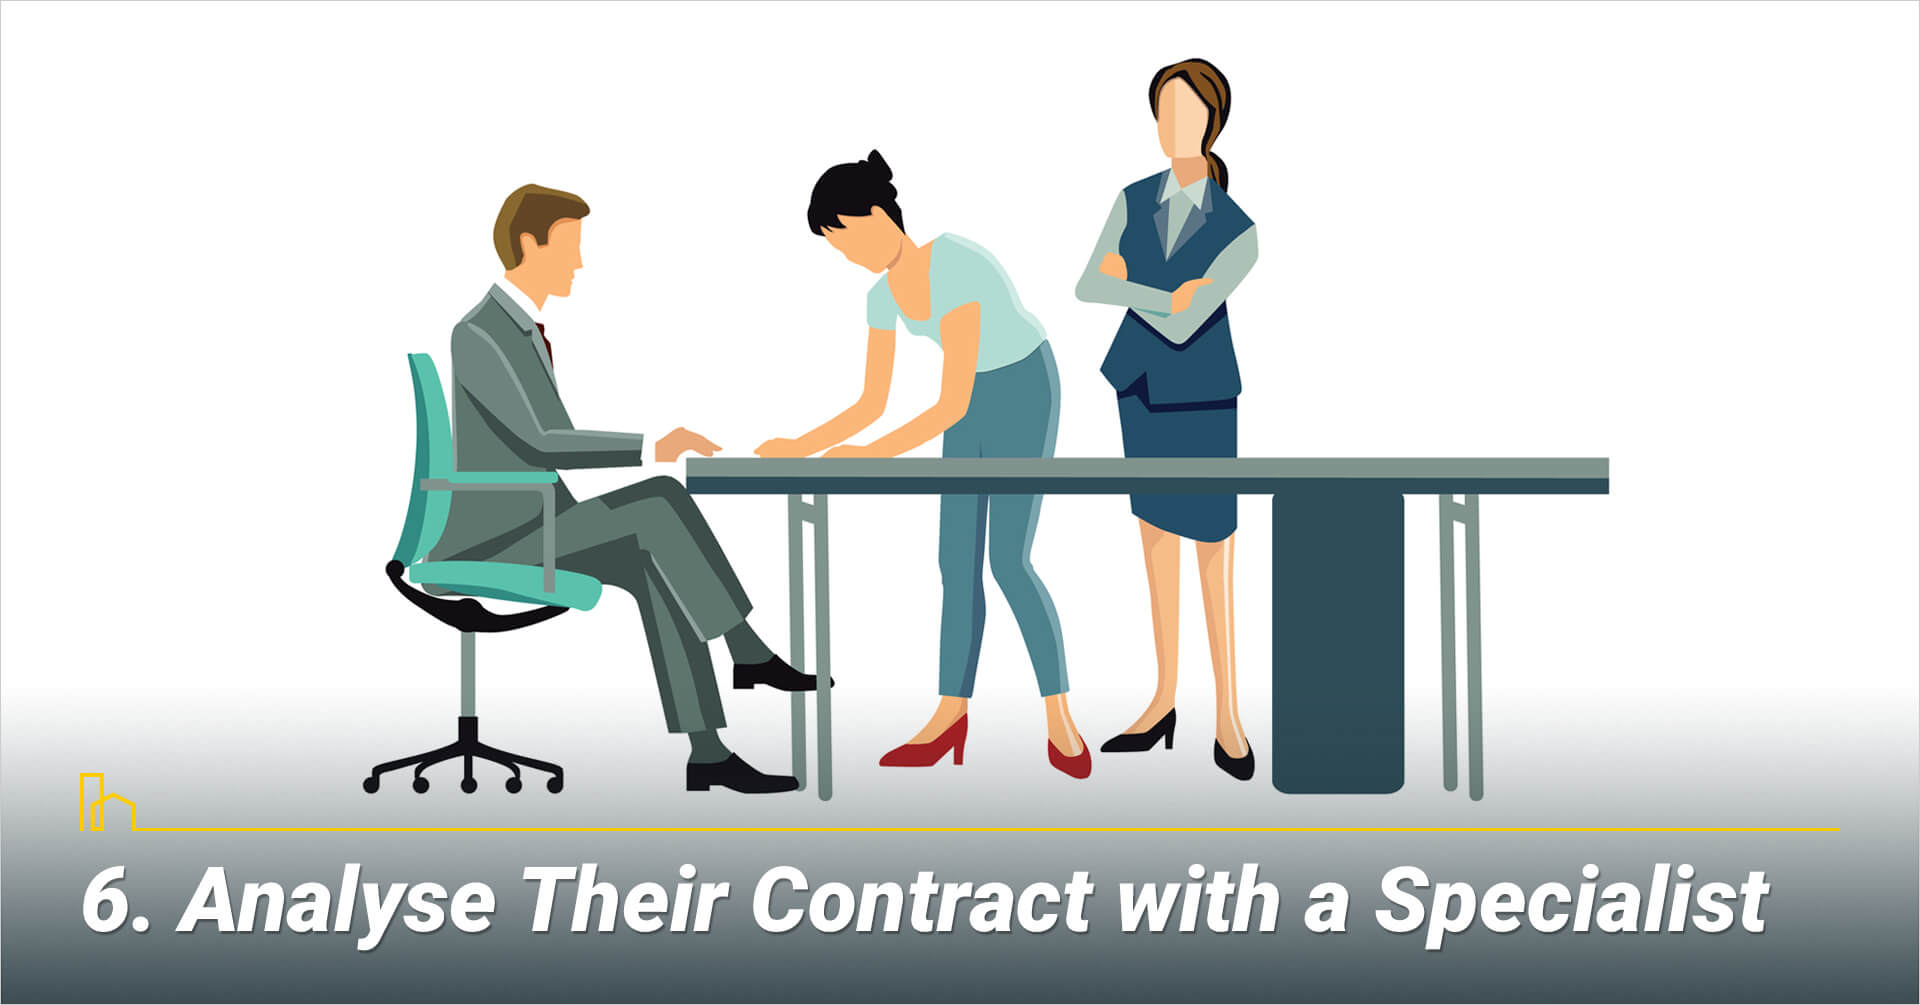 Analyse Their Contract with a Specialist, get help viewing the contract